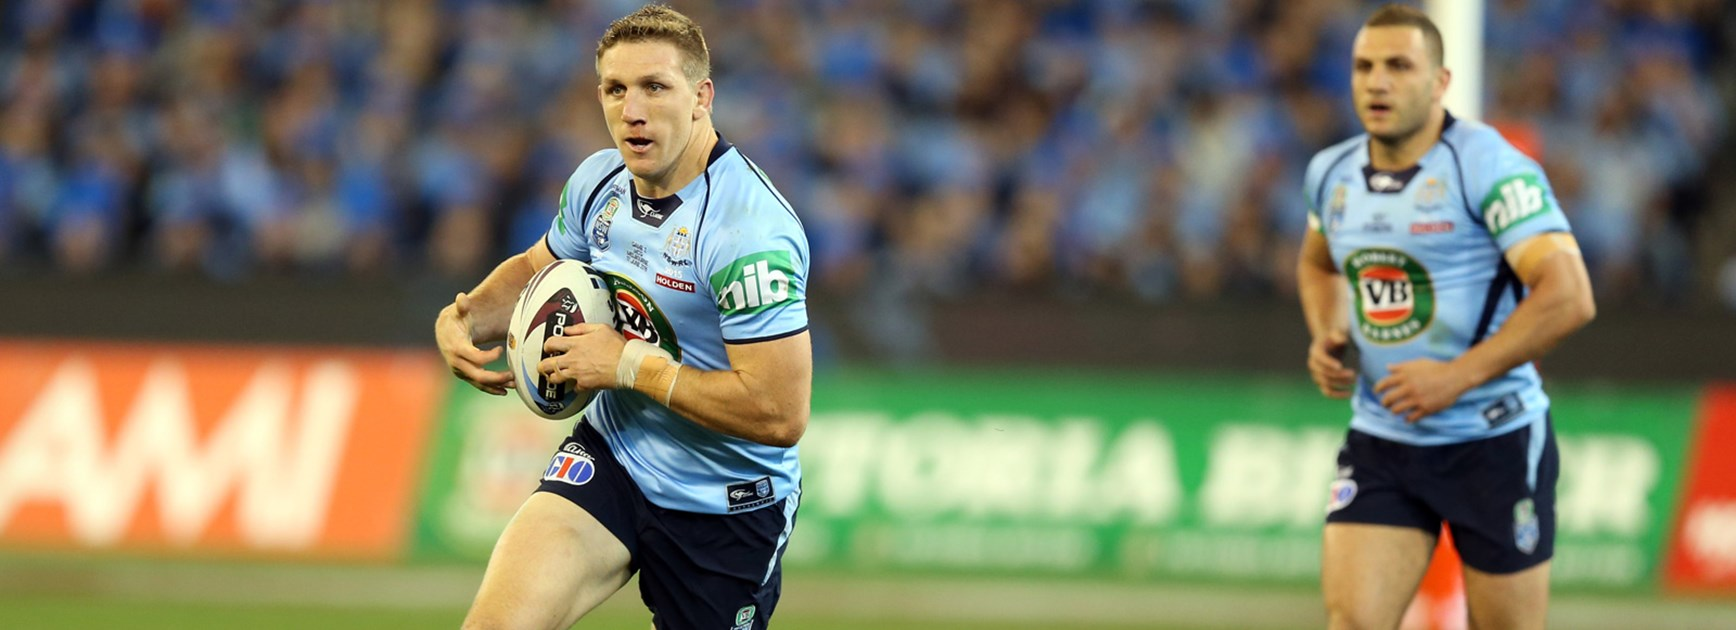 Blues back-rower Ryan Hoffman terrorised Daly Cherry-Evans in Origin II at the MCG.